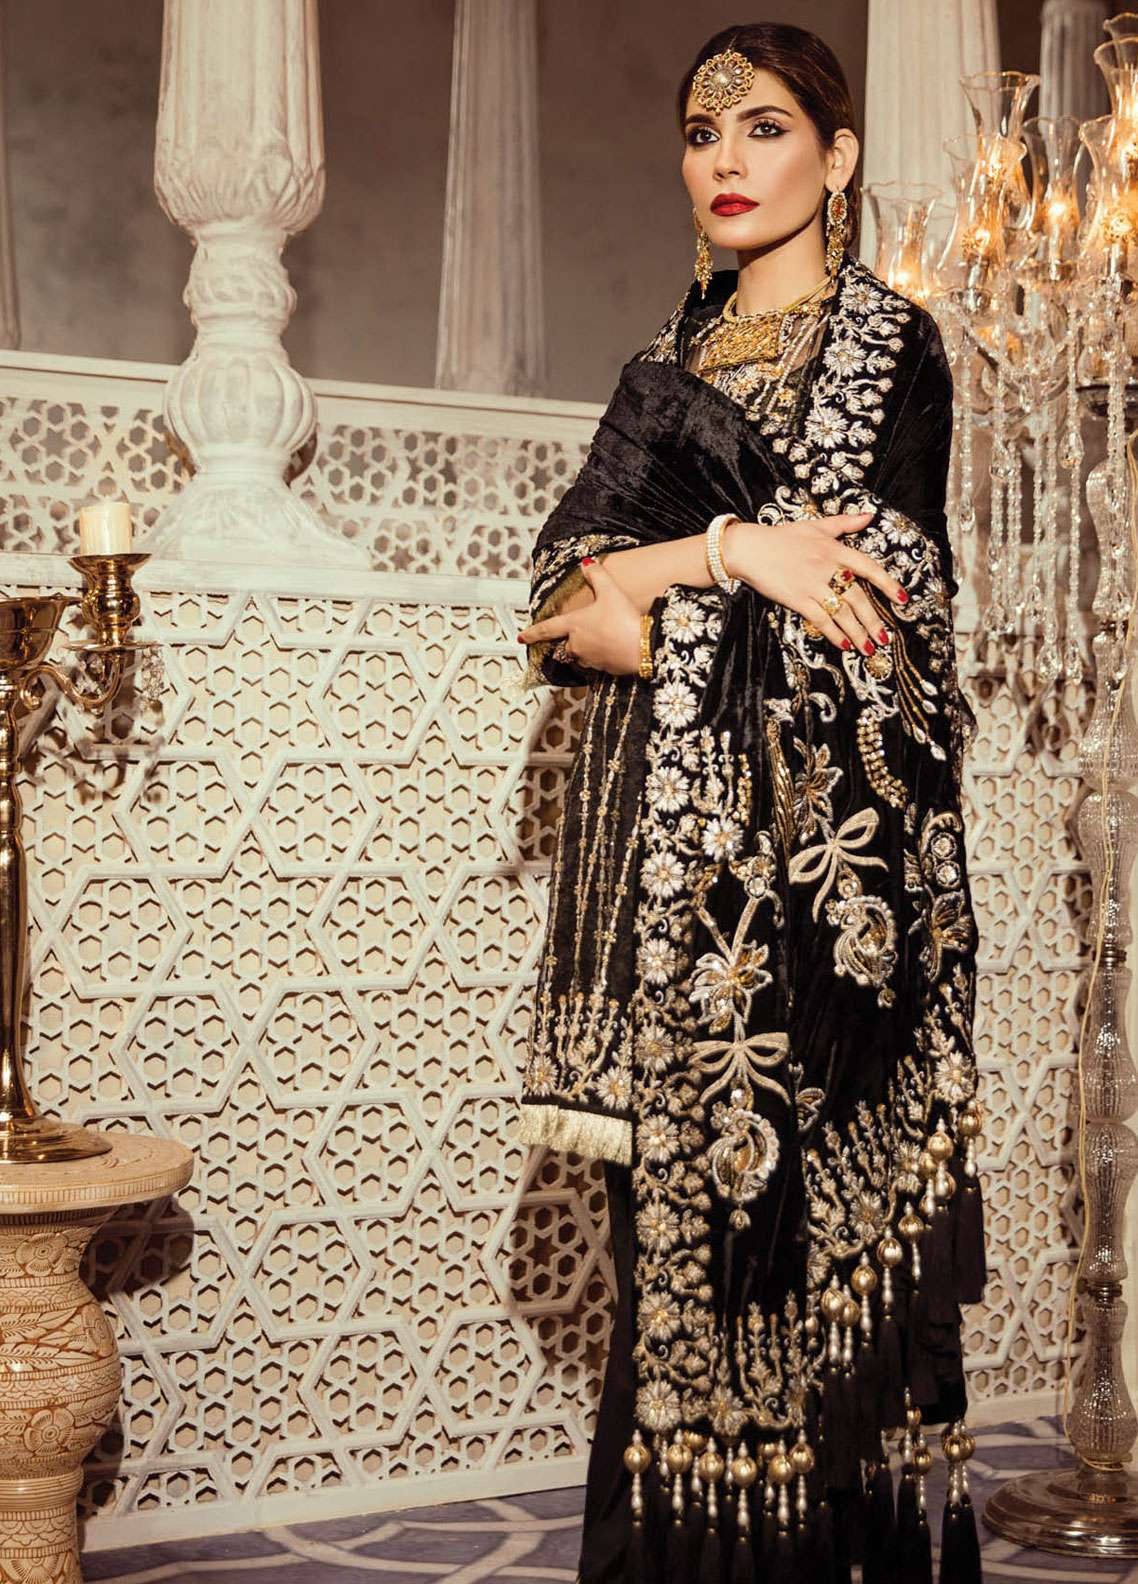 e286d3683e Anaya By Kiran Chaudhry Embroidered Zari Net Unstitched 3 Piece Suit  AKC18KR 02 Jewel - Wedding Collection